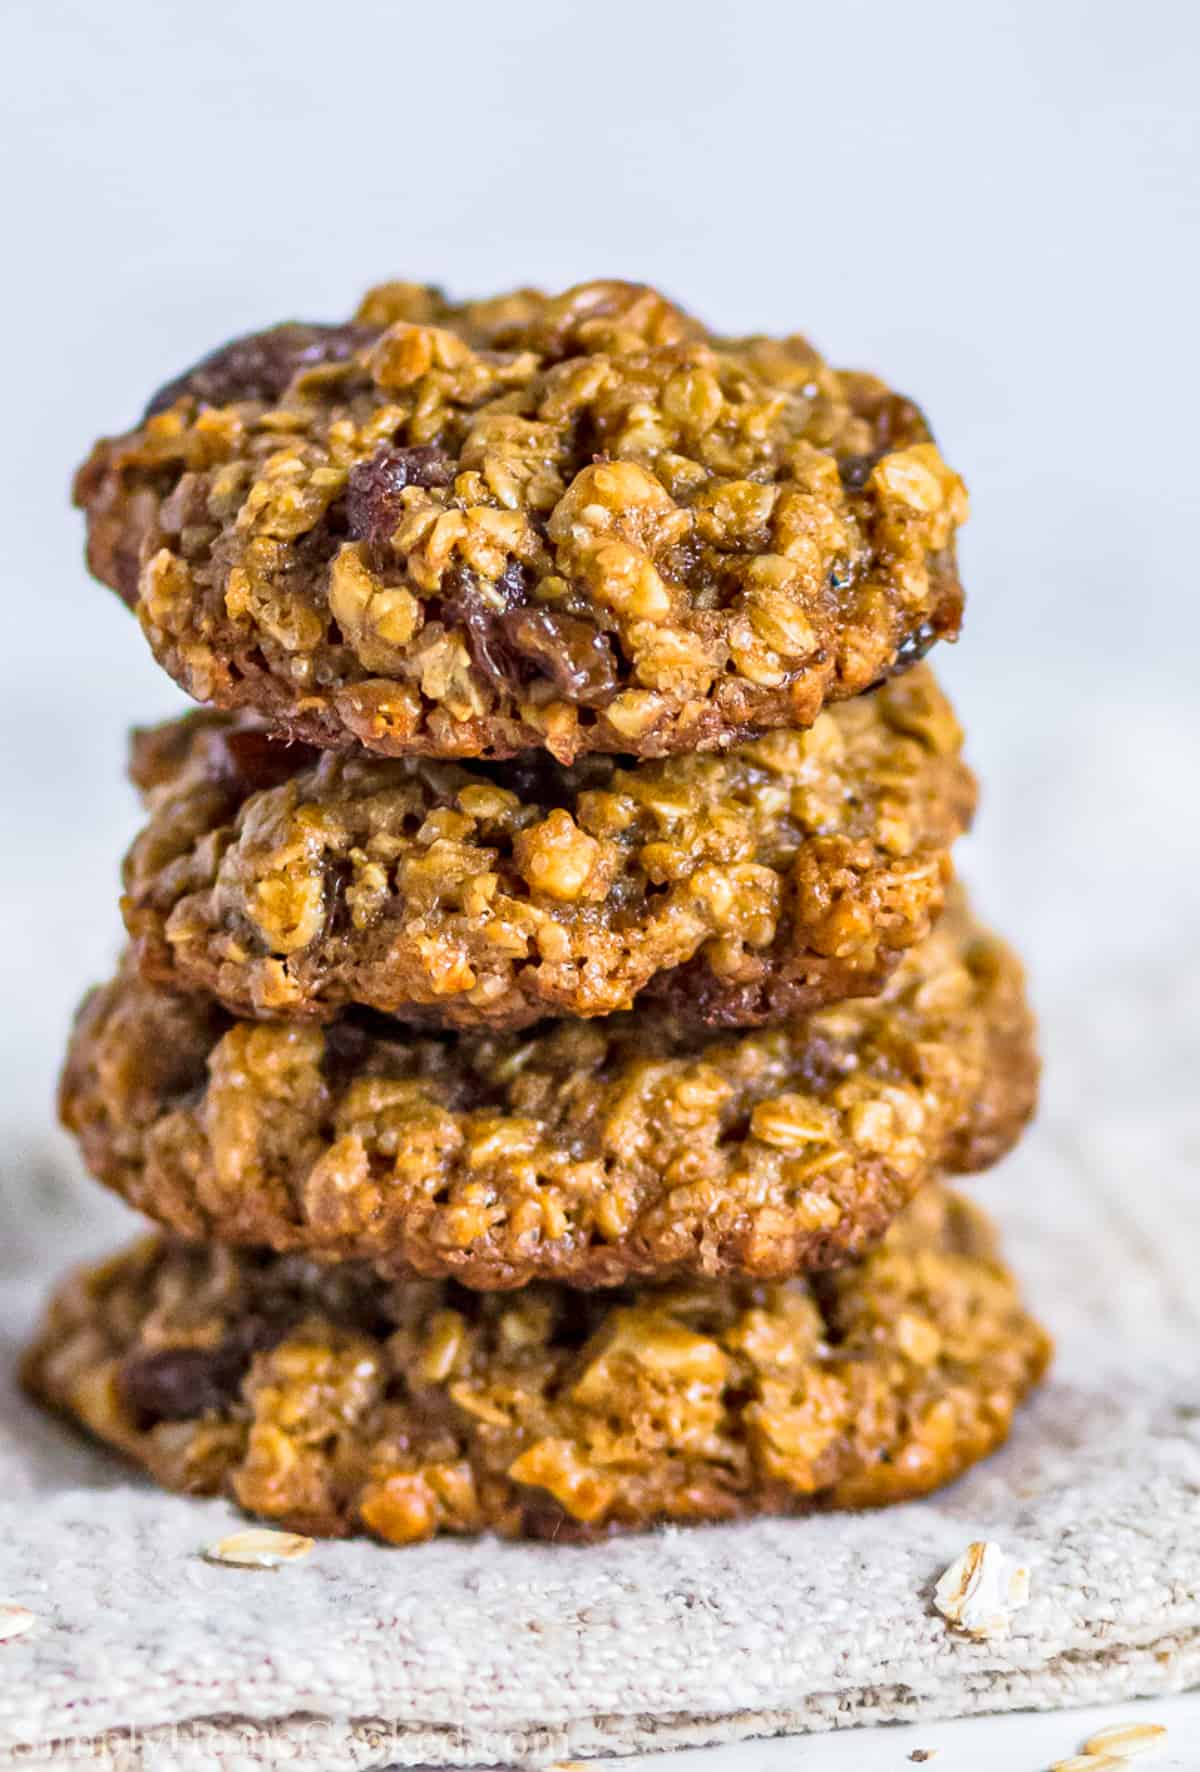 Stack of Chewy Oatmeal Raisin Cookies